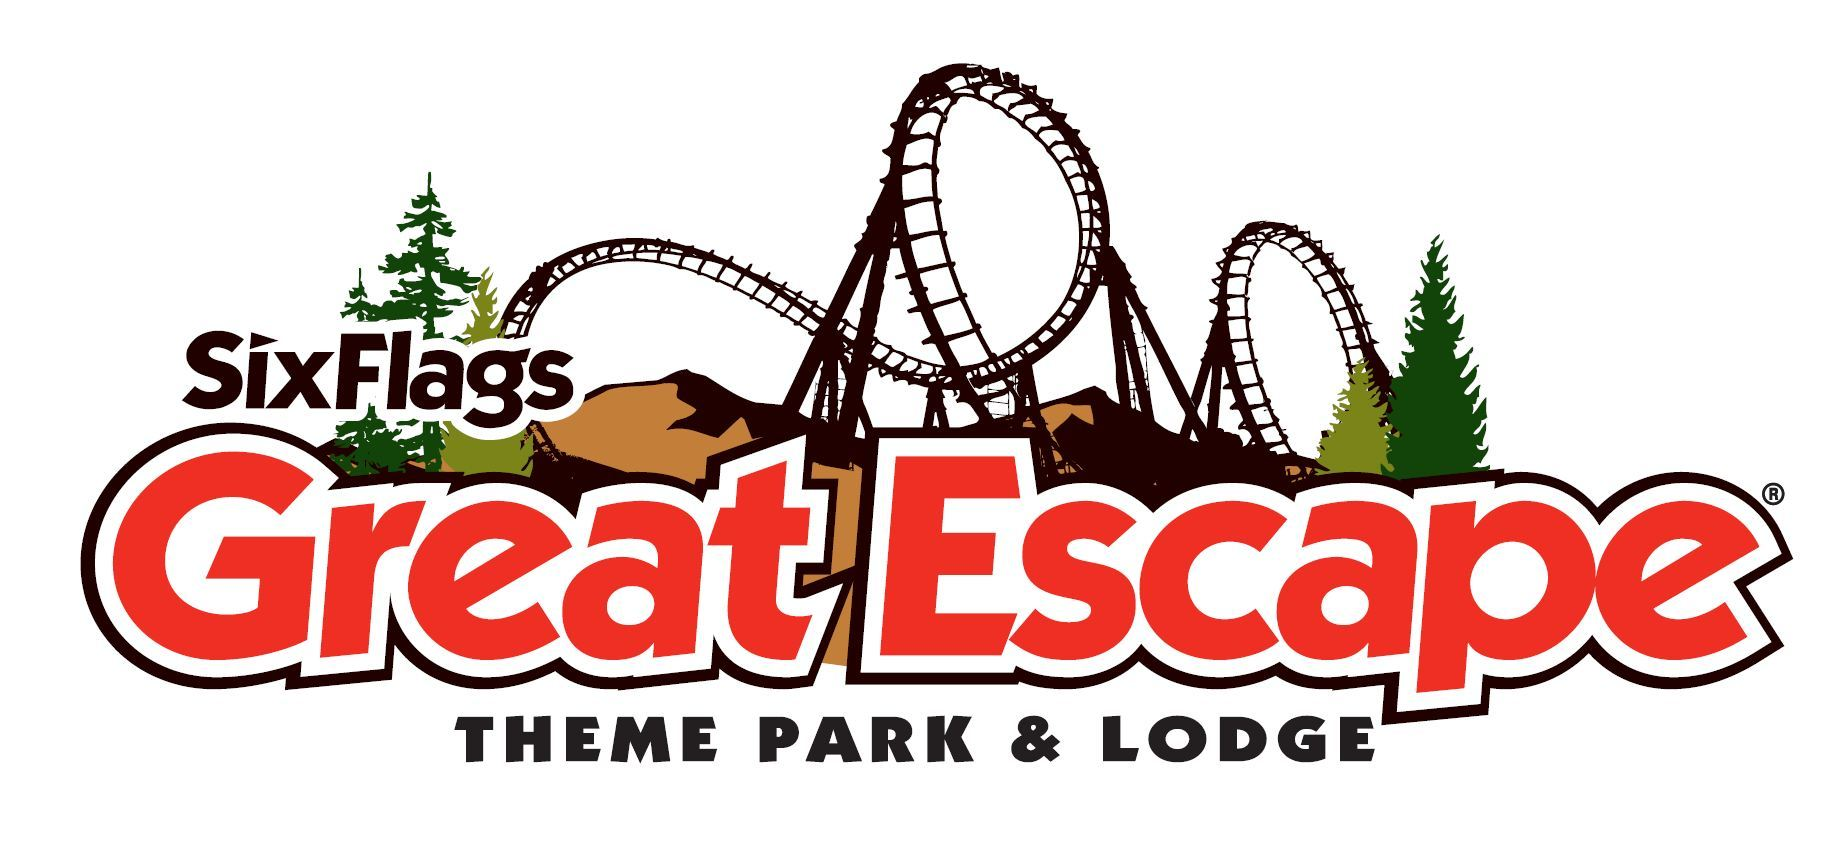 Six Flags Great Escape Waterpark Will Debut New Rides New Theming And A New Name Business Wire